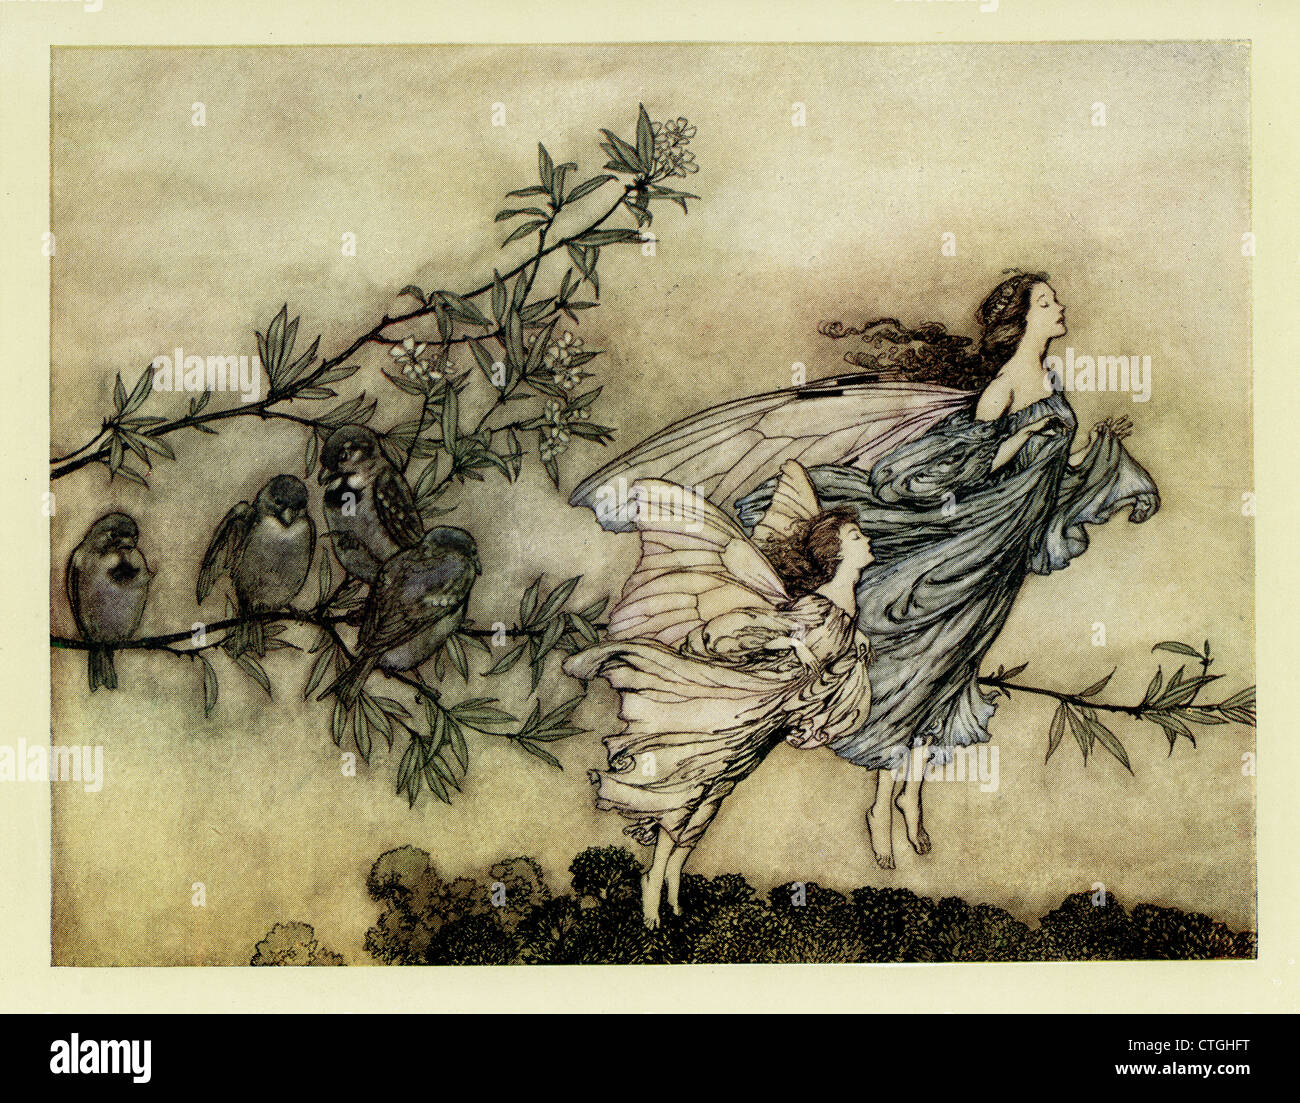 Illustration by Arthur Rackham from Peter Pan in Kensington Gardens. The fairies have their tiffs with the birds. - Stock Image